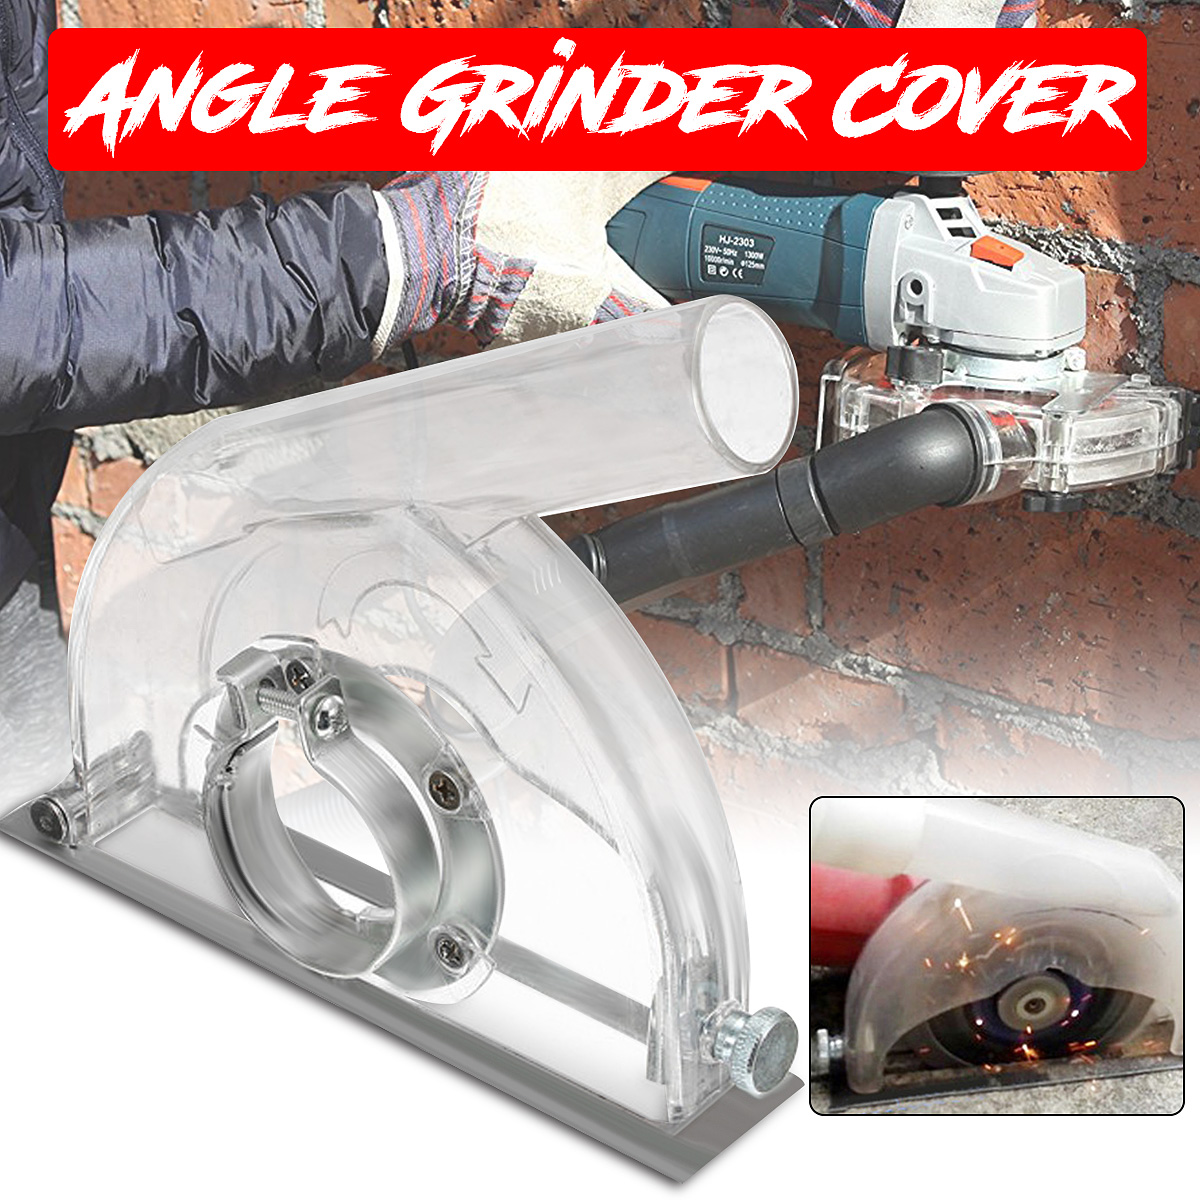 Angle Grinder Cutting Dust Cover Transparent Grinding Dust Cover For 4 5 Inch Angle Grinder  High QualityAngle Grinder Cutting Dust Cover Transparent Grinding Dust Cover For 4 5 Inch Angle Grinder  High Quality